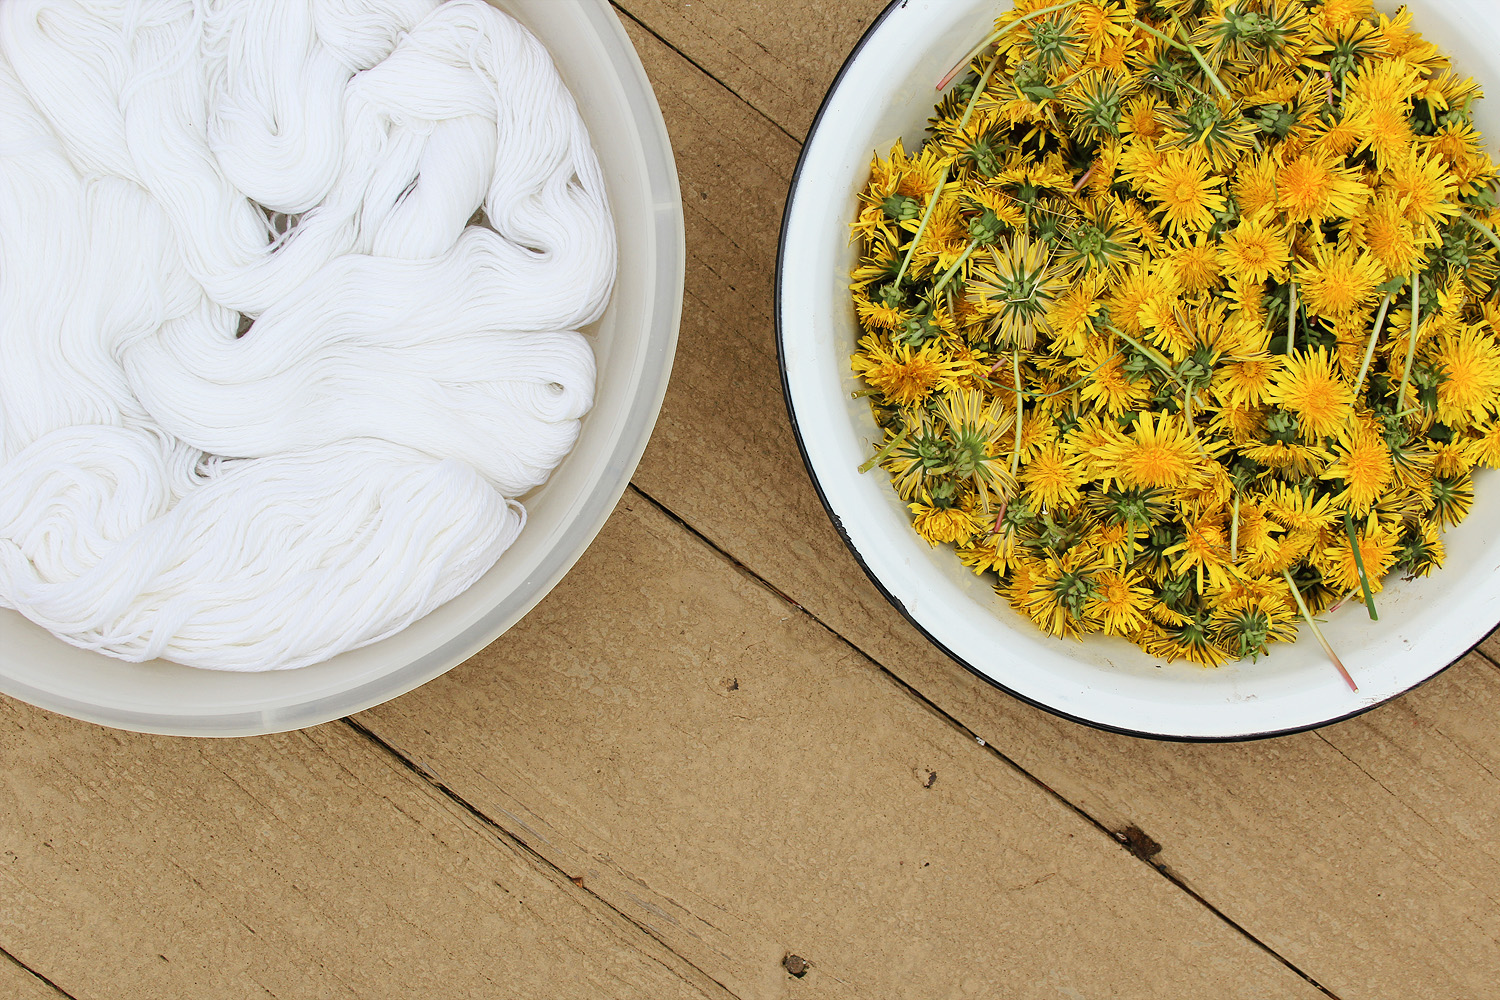 Dyeing with Dandelions